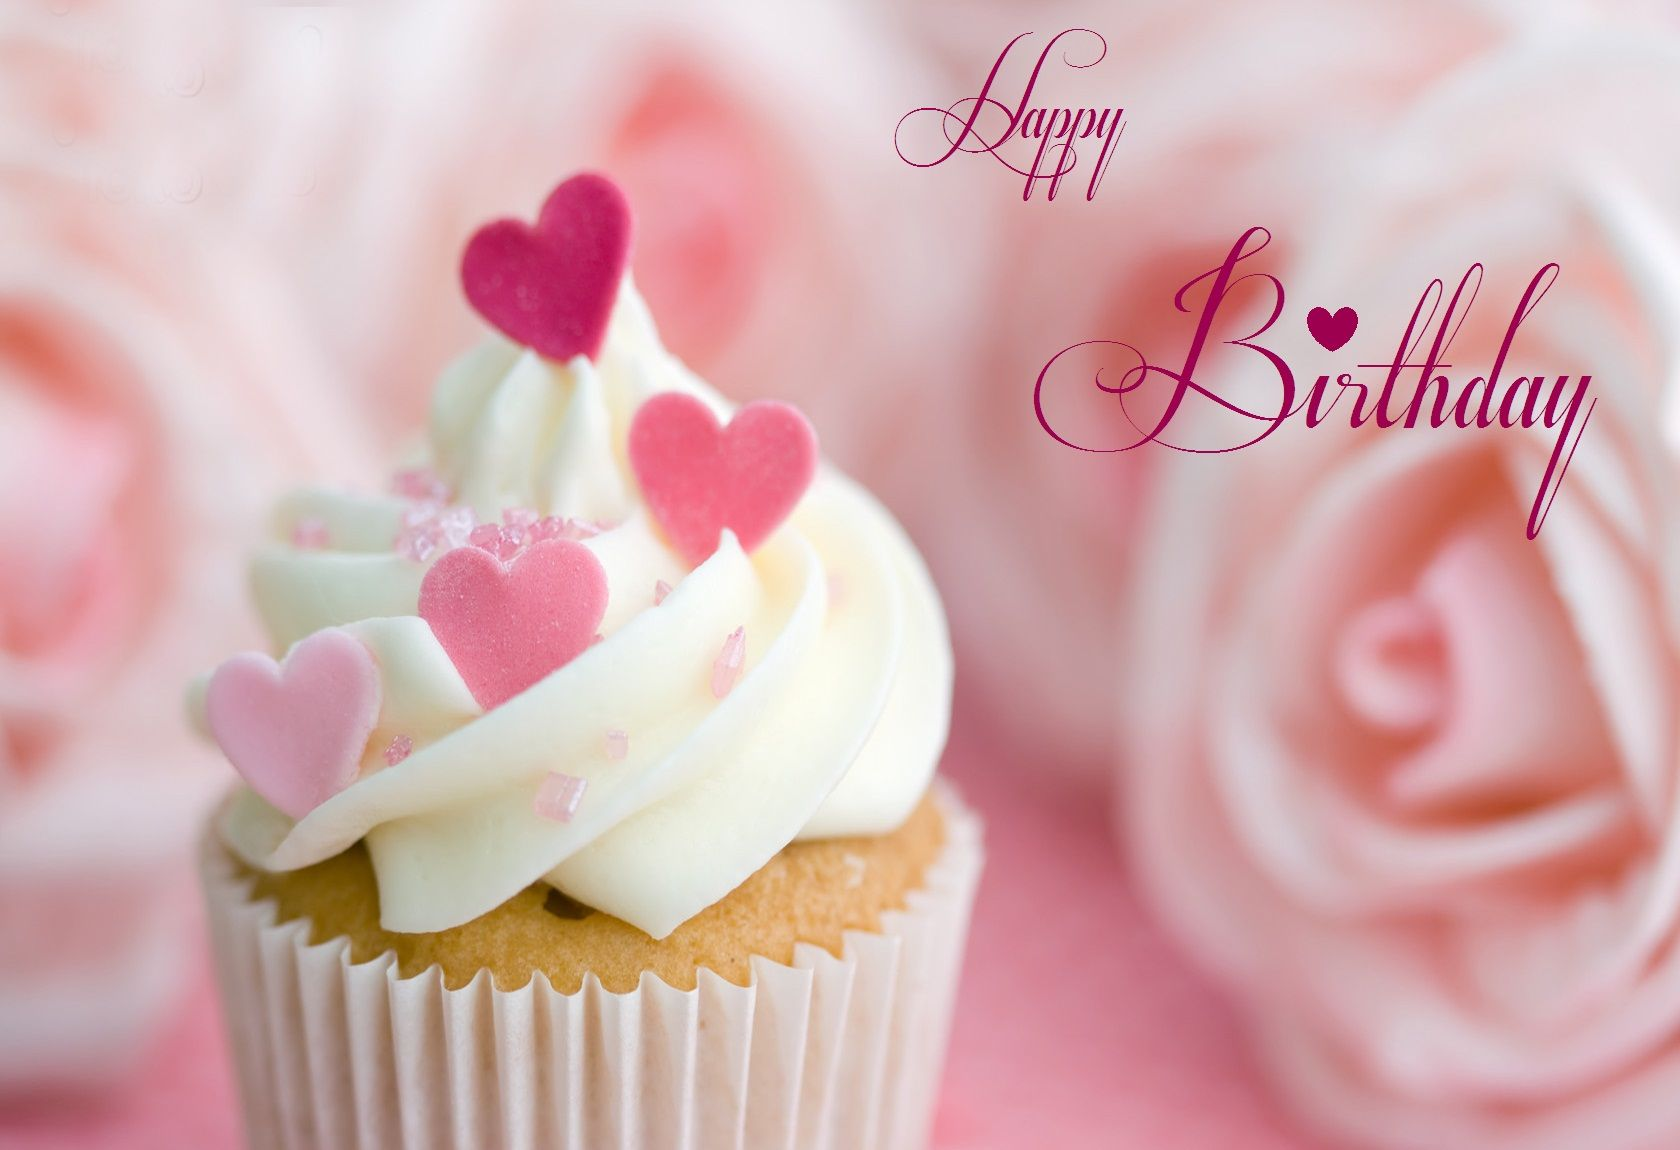 Birthday Quotes For Sister Free Download Birthday sayings for